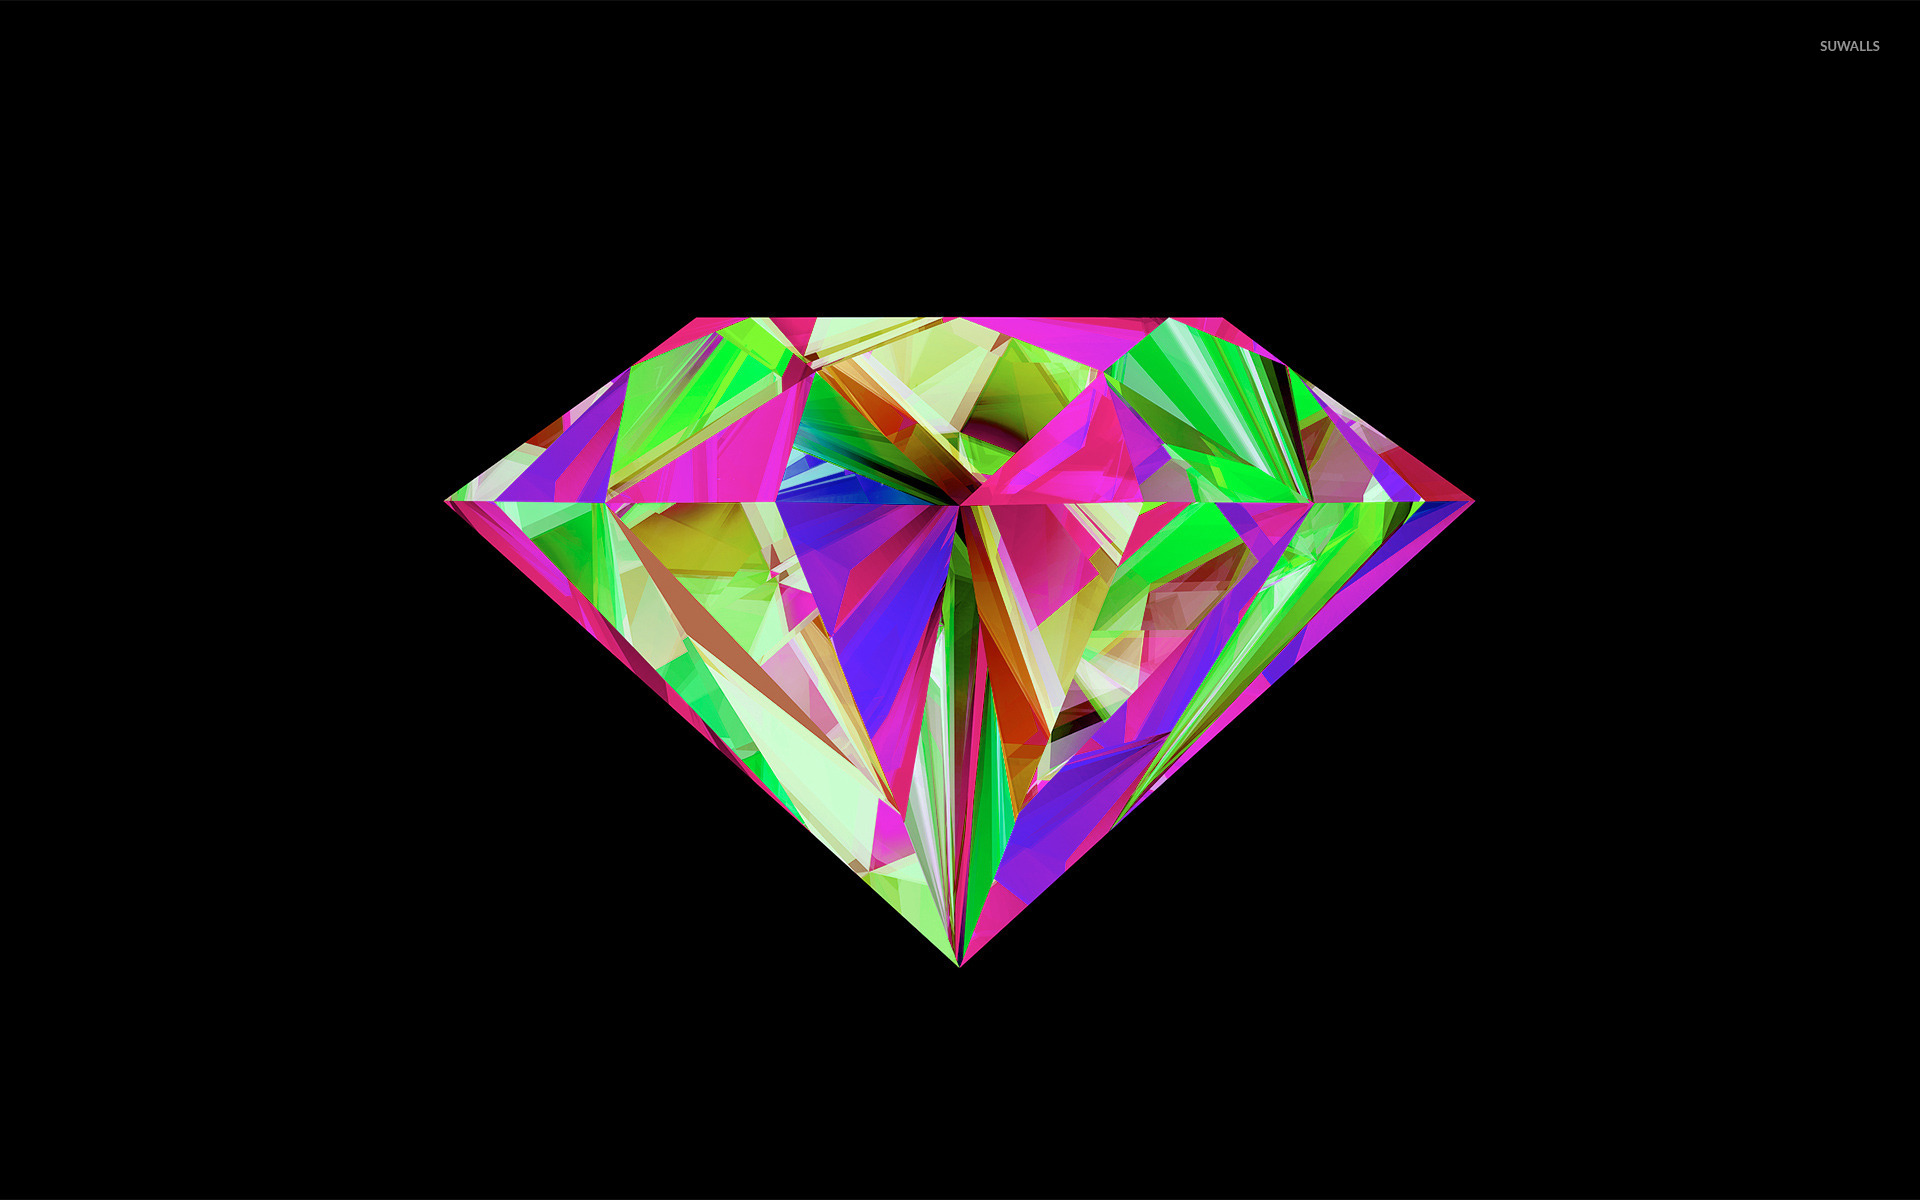 Colorful diamond wallpaper Vector wallpapers 31520